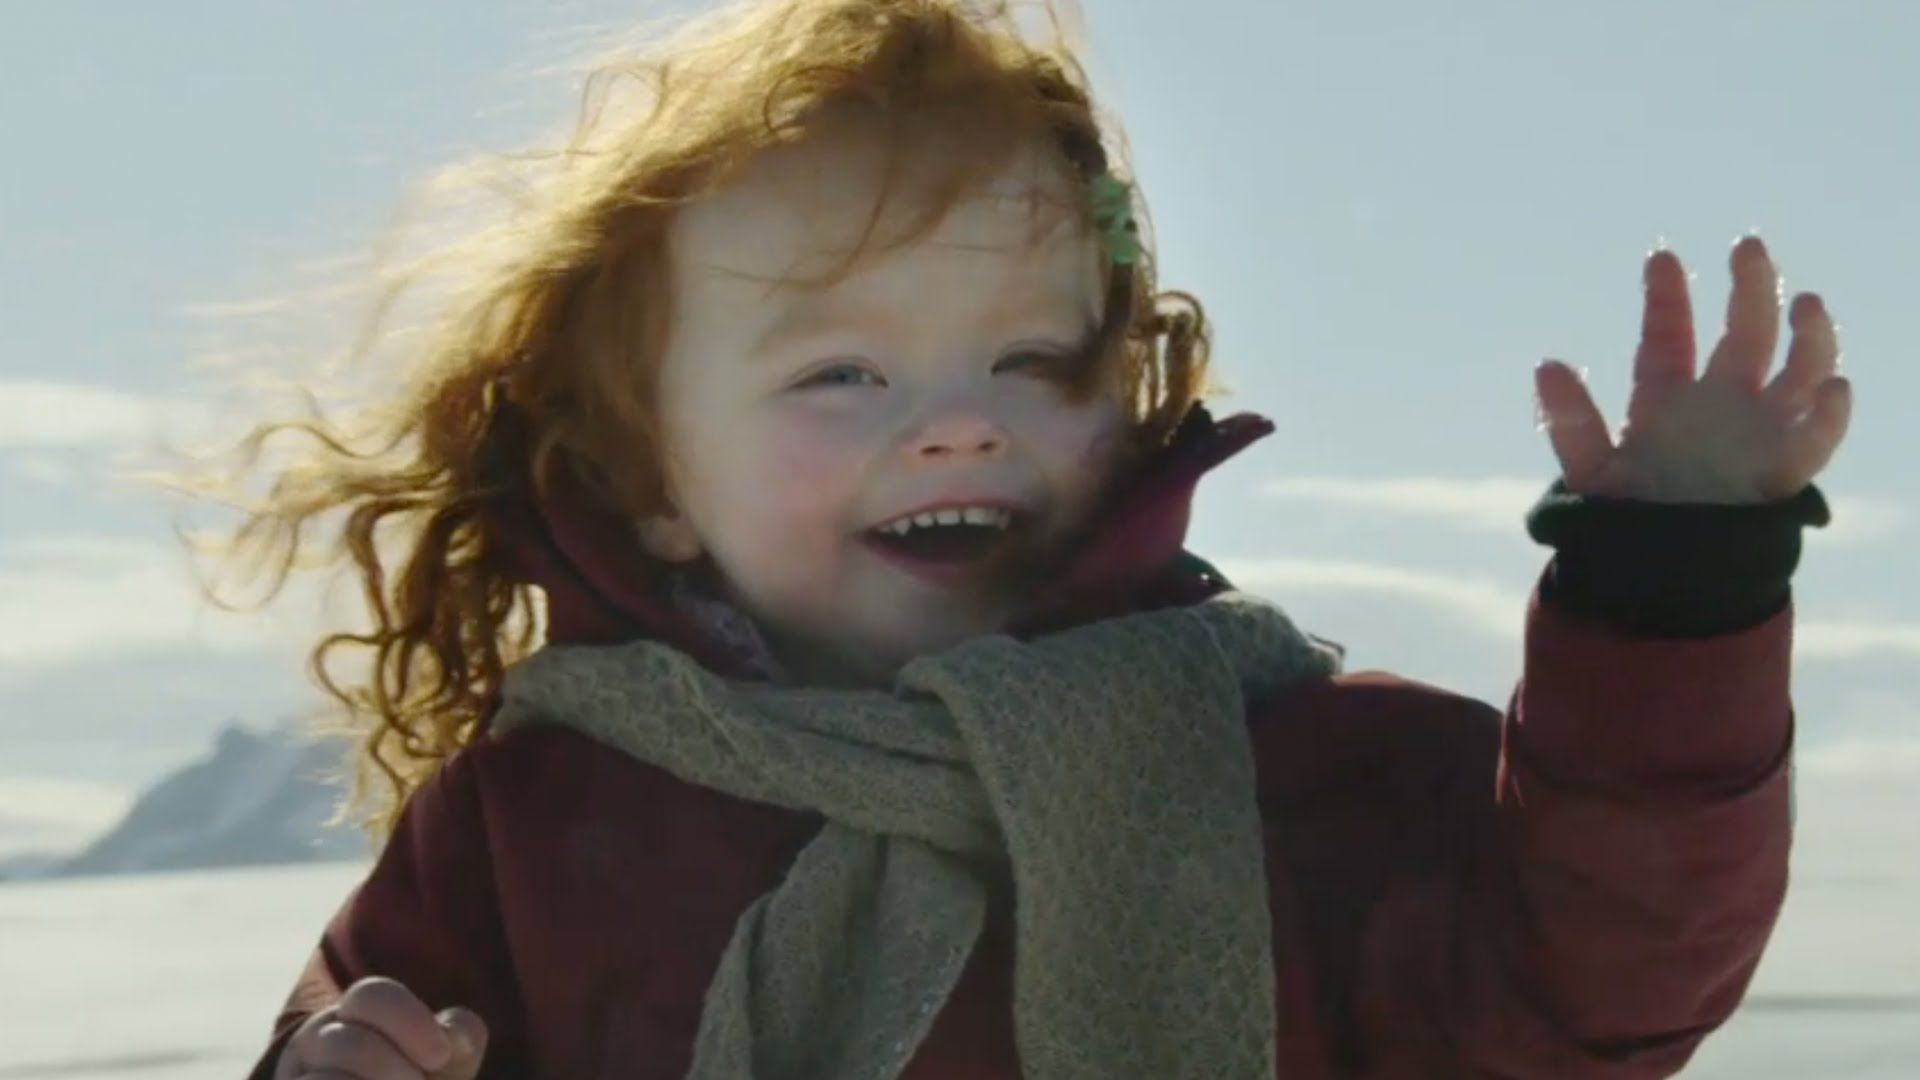 windows 10 commercial baby